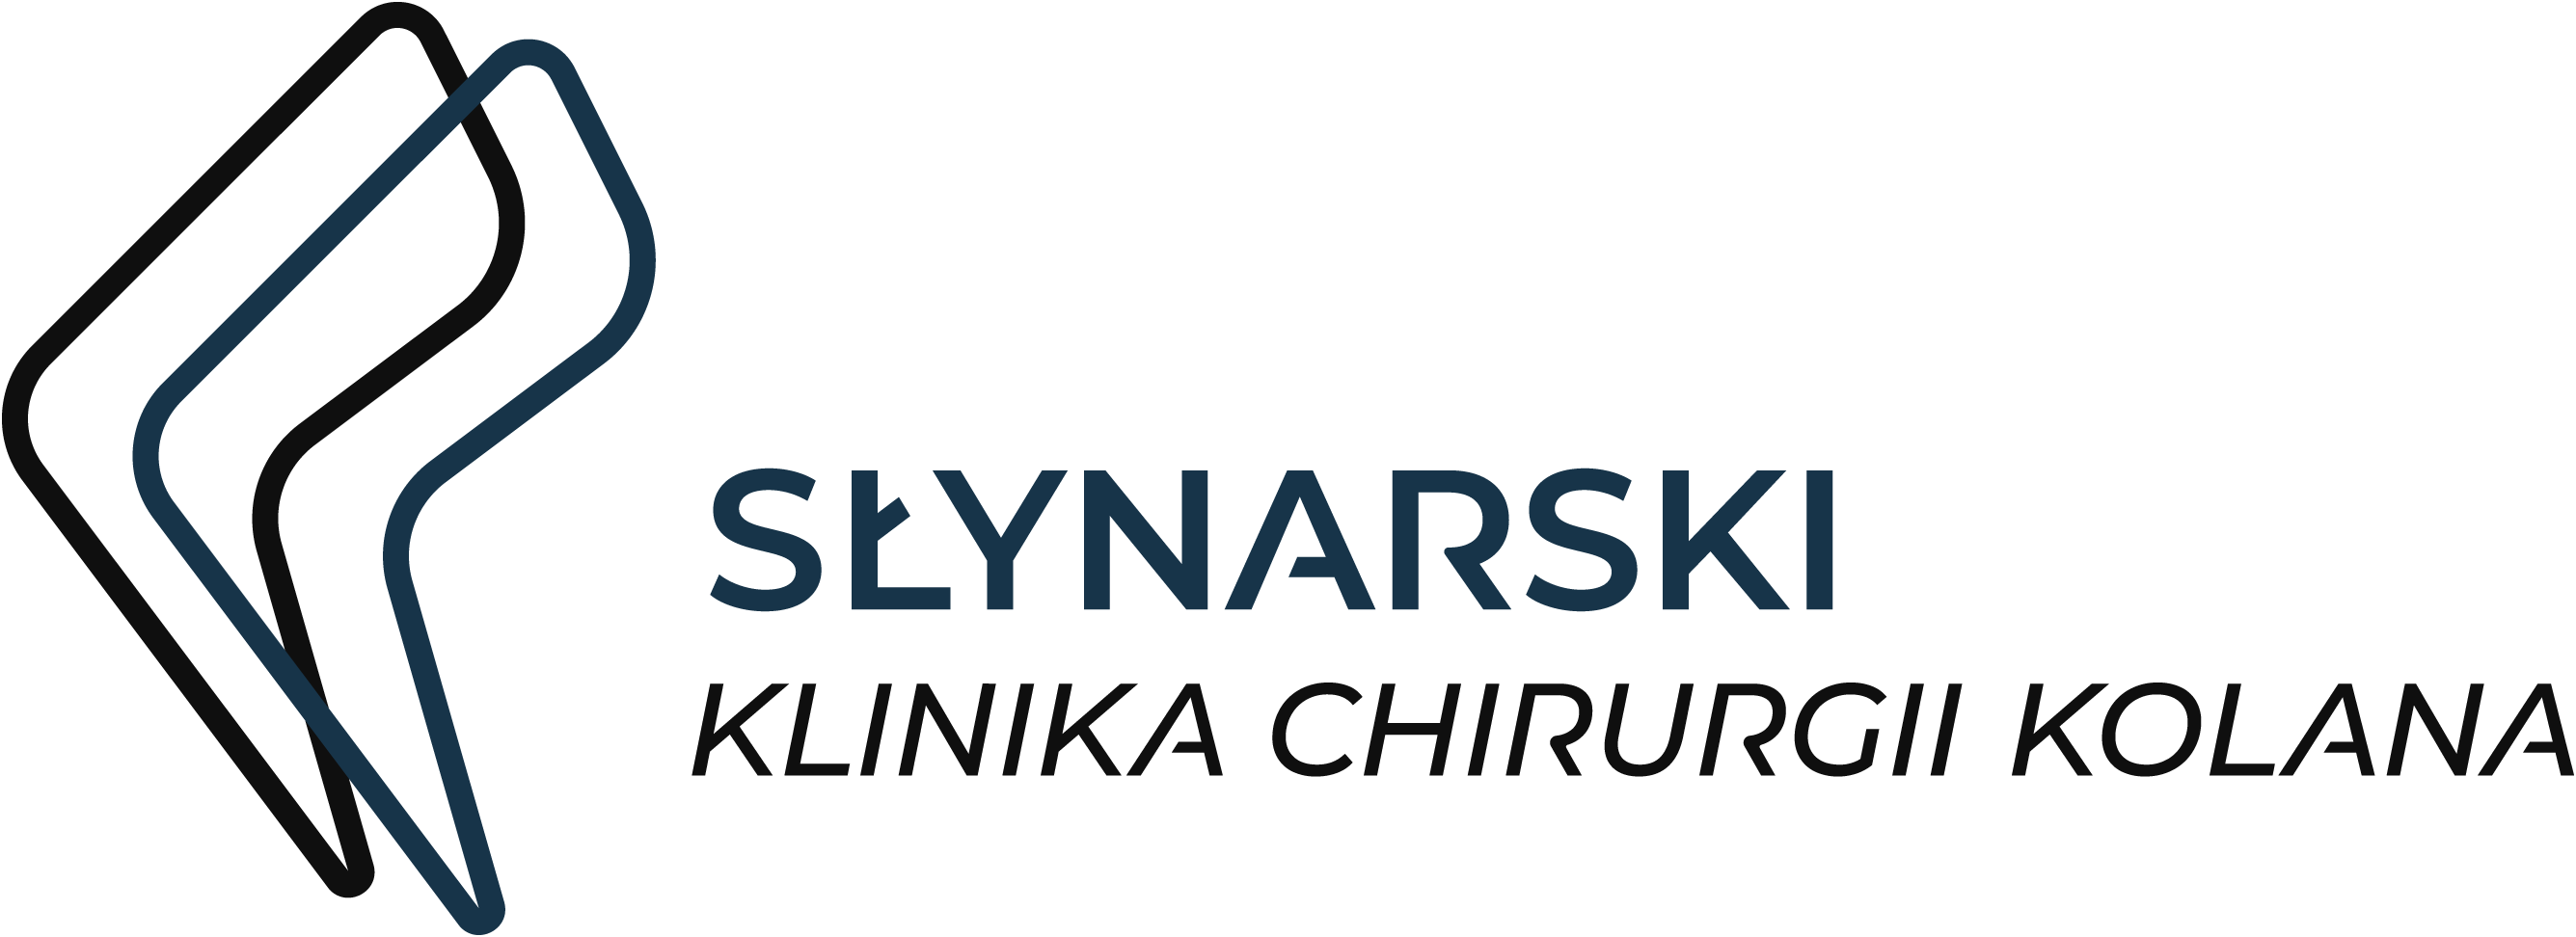 nter the text for your logo. - Słynarski Klinika Chirurgii kolana